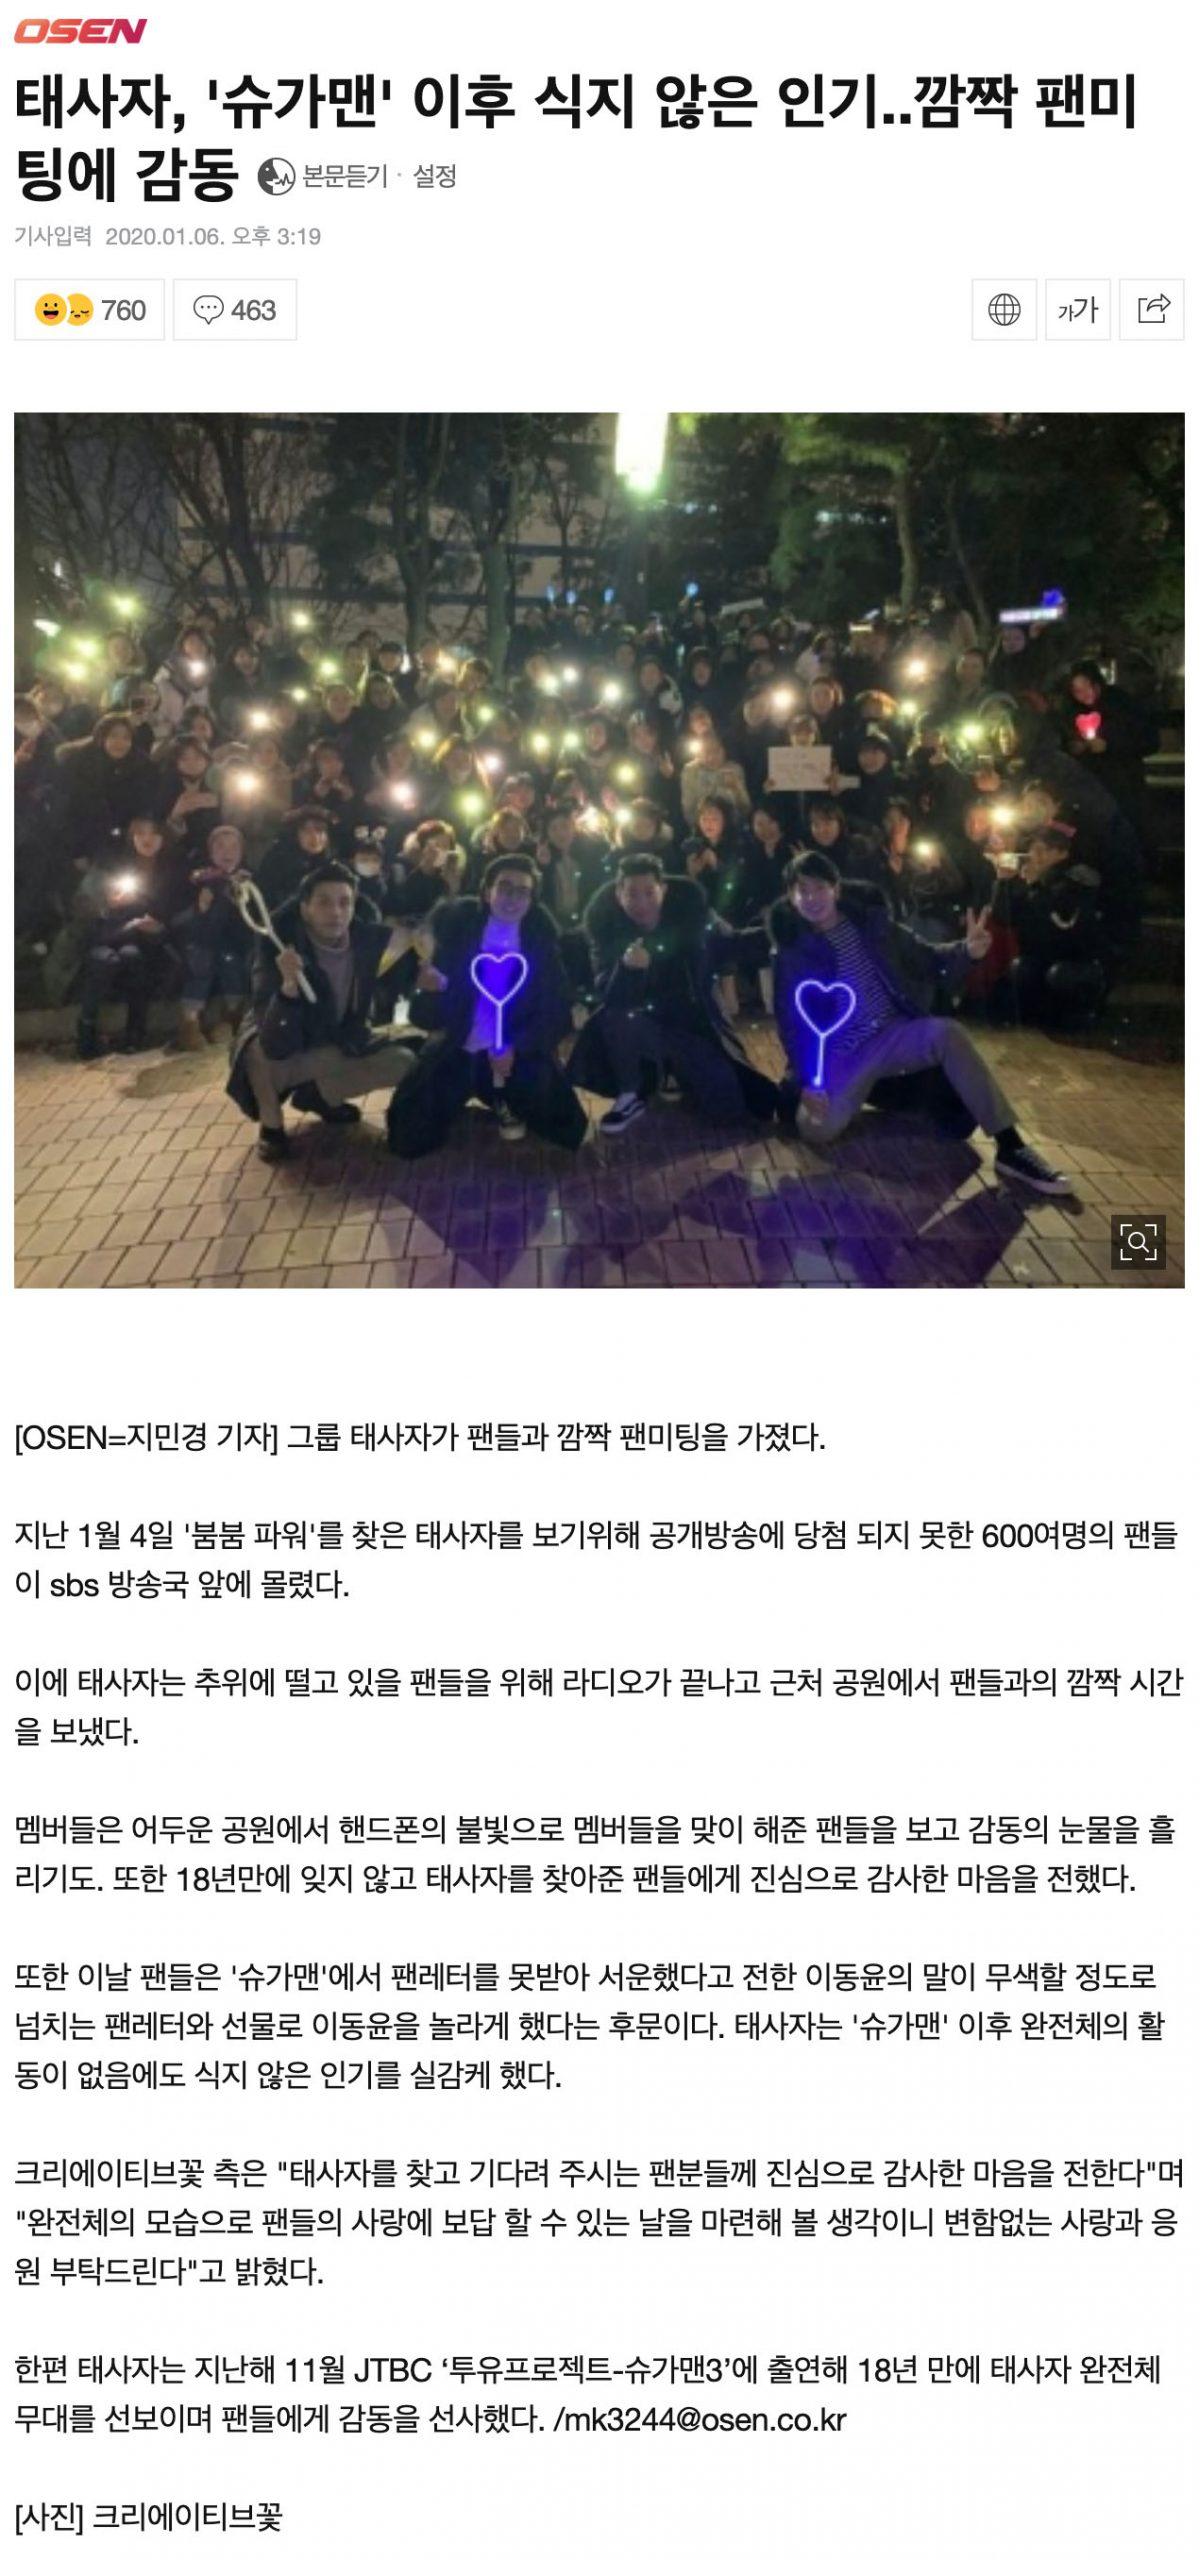 screencapture-n-news-naver-entertain-article-109-0004145986-2020-01-31-12_22_16